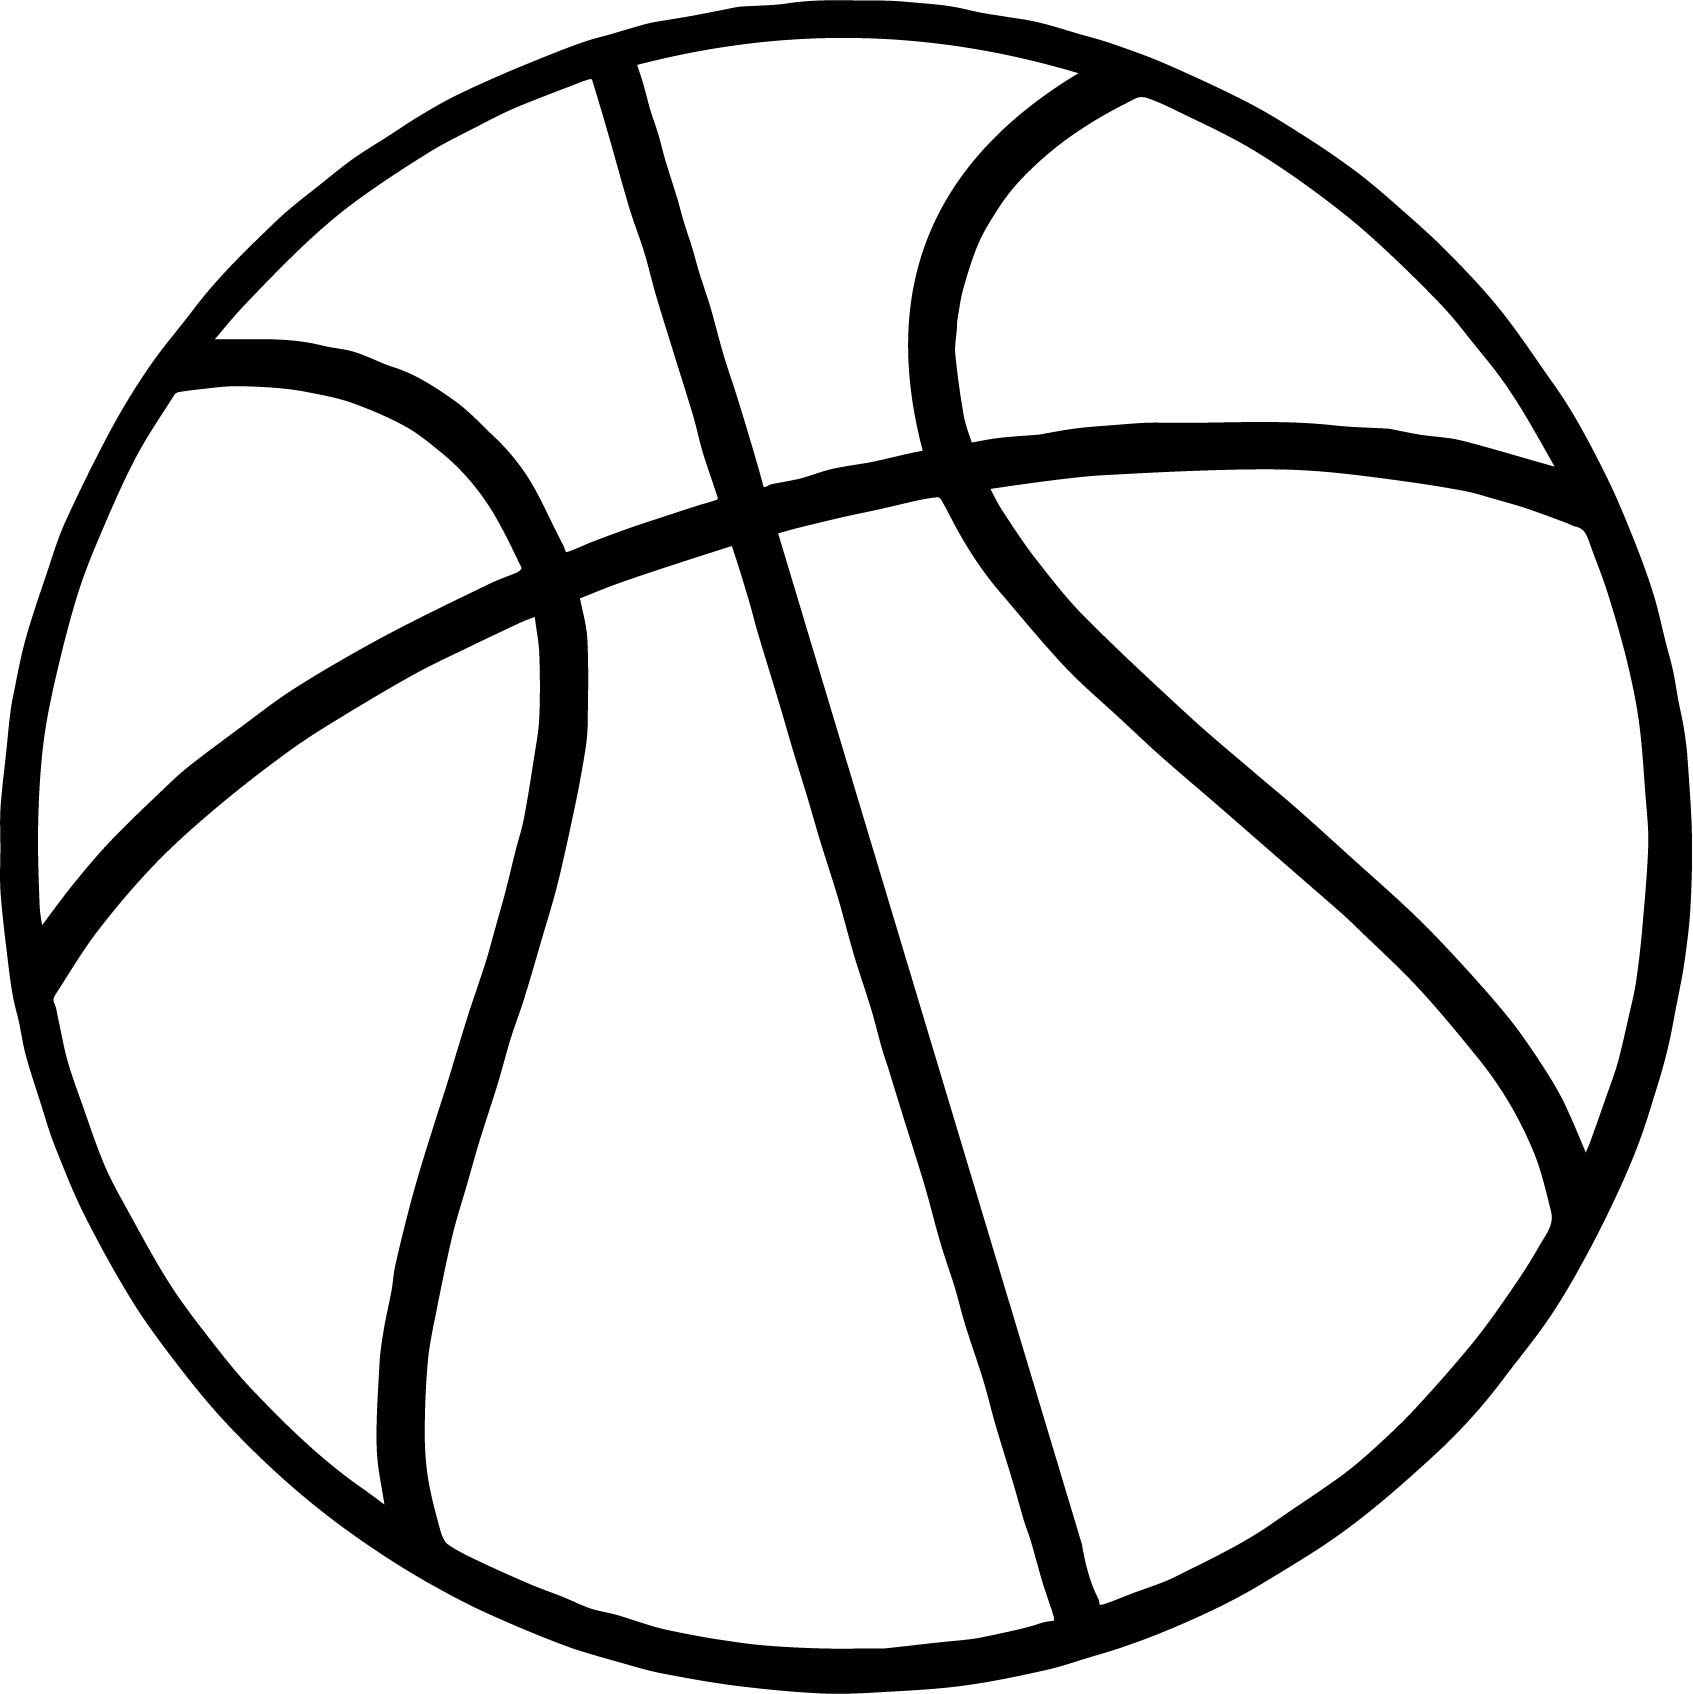 ball coloring pages soccer ball coloring pages coloring page print color fun coloring ball pages